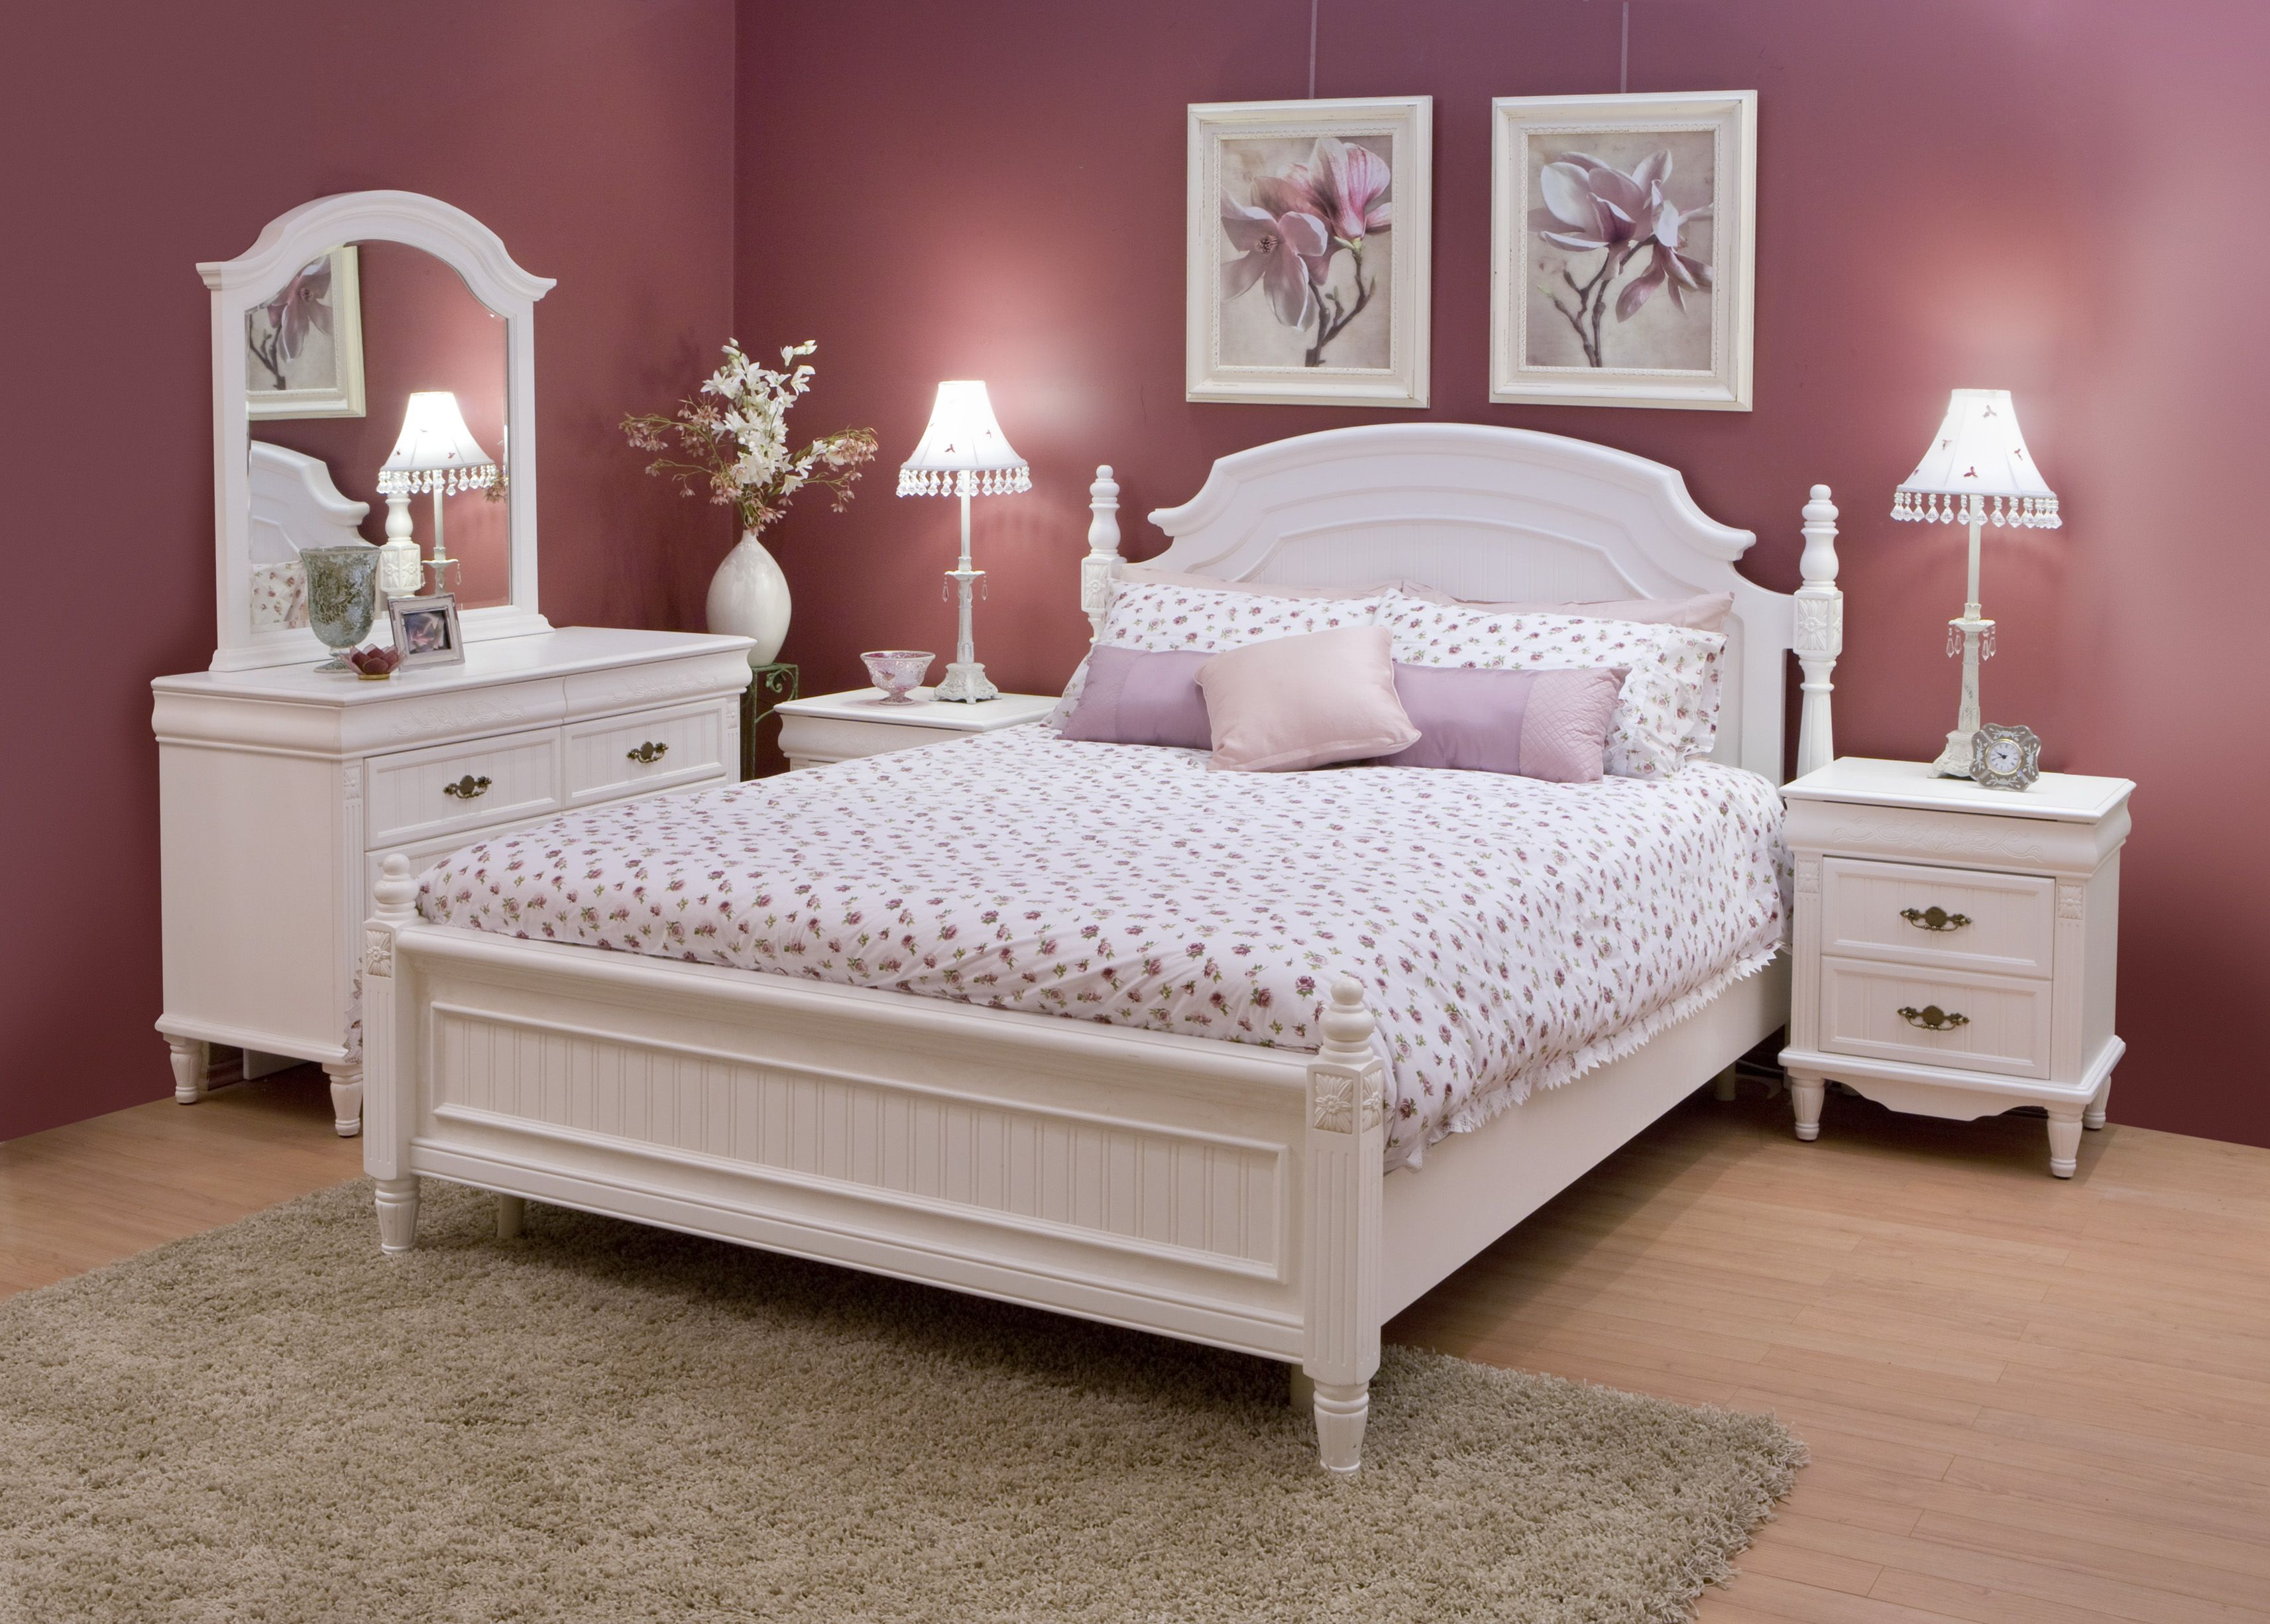 Get Inspired By The Latest Bedroom Trend: White Furniture